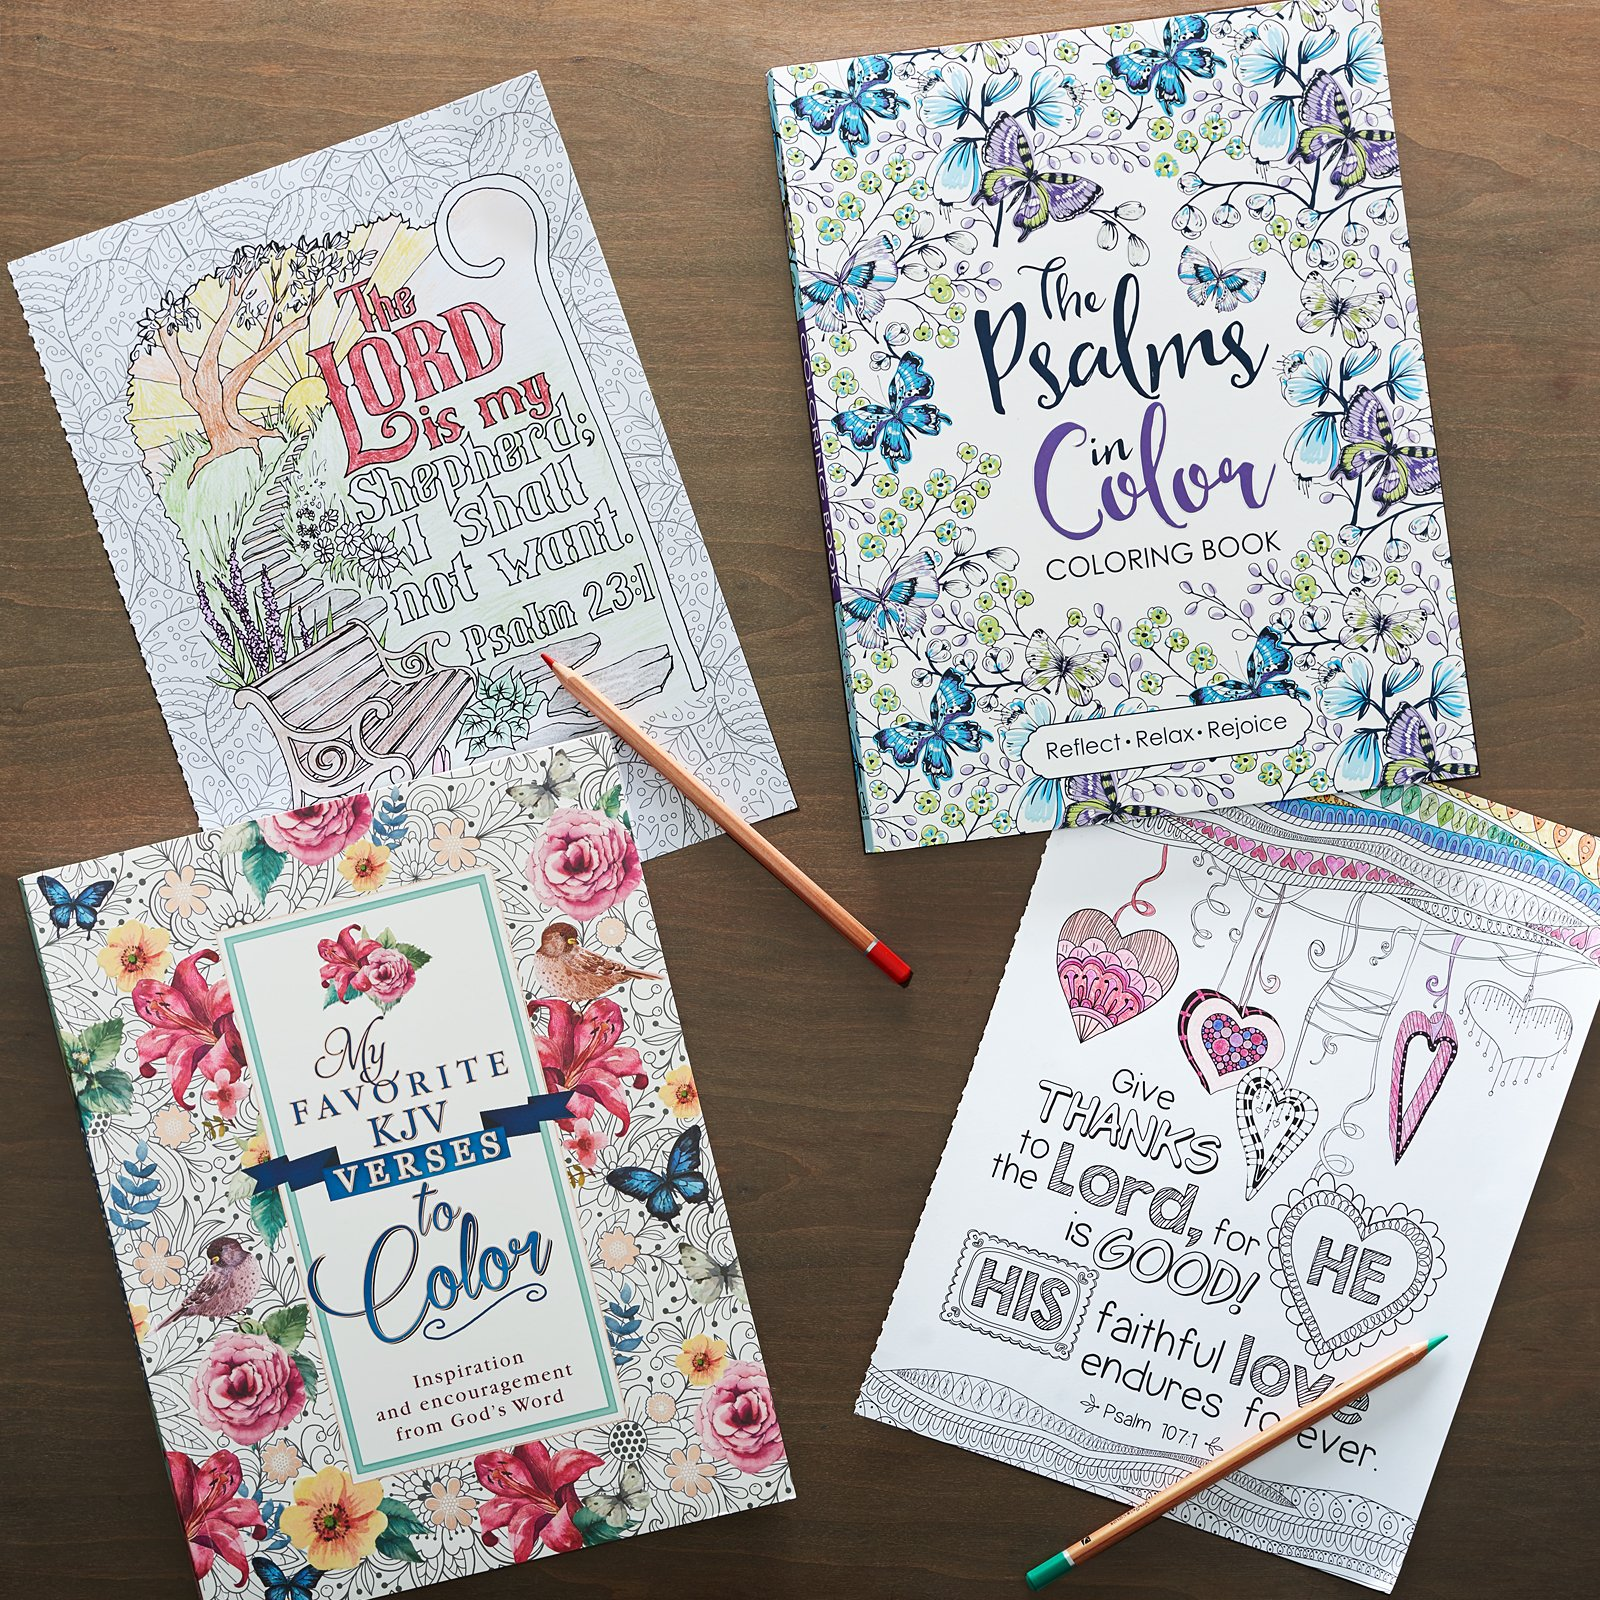 PSALMS IN COLOR ADULT COLORING BOOK Amazonca Art Gift Christian Books